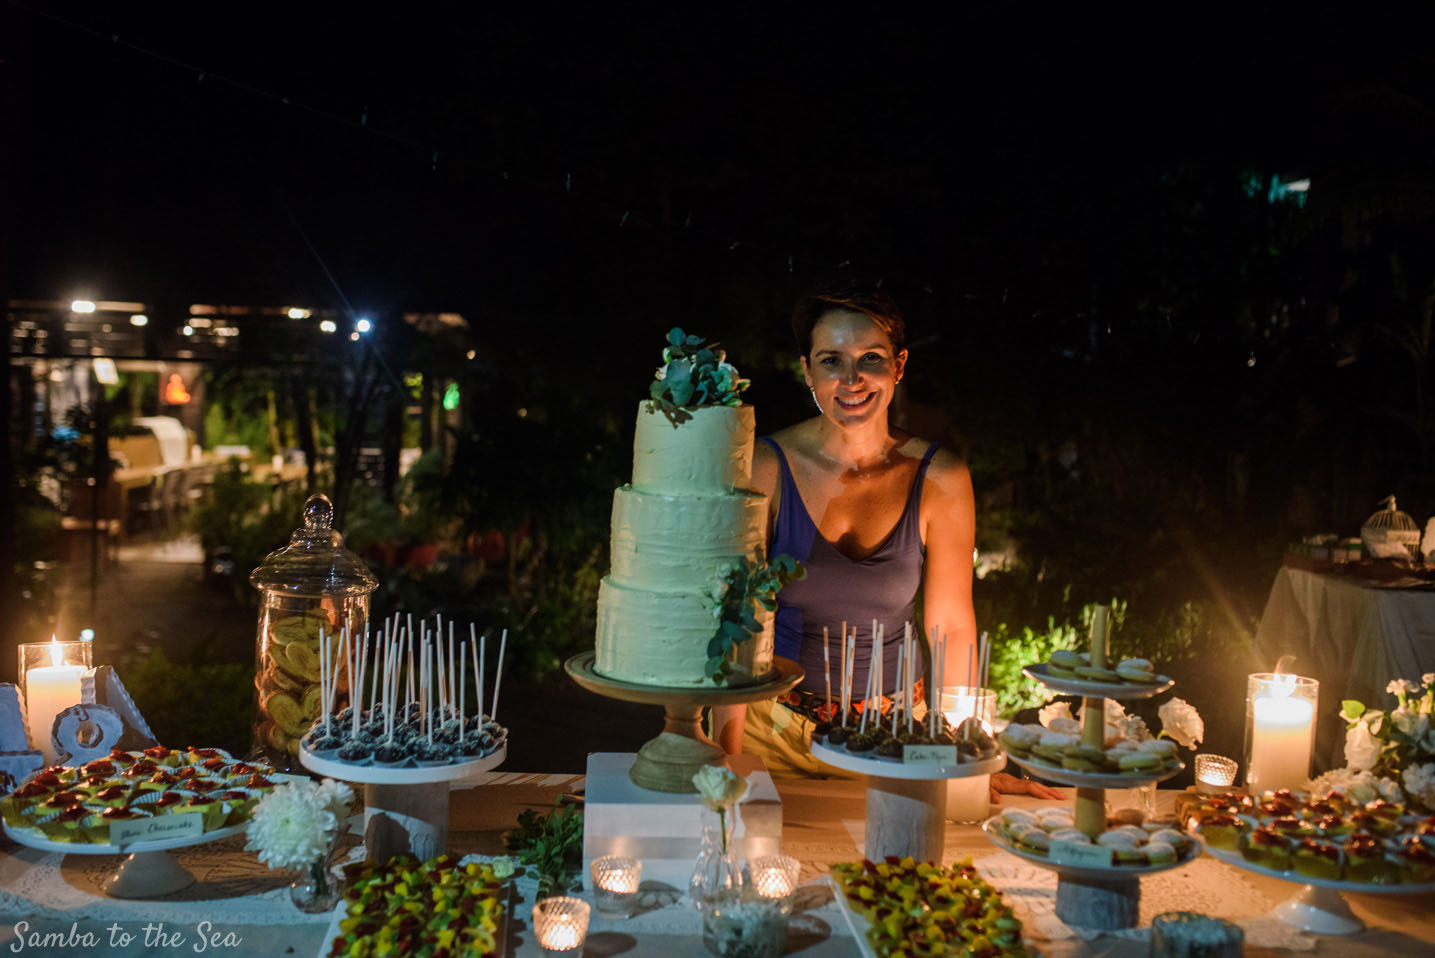 Wedding cakes in Tamarindo, Costa Rica. Photographed by Kristen M. Brown, Samba to the Sea Photography.